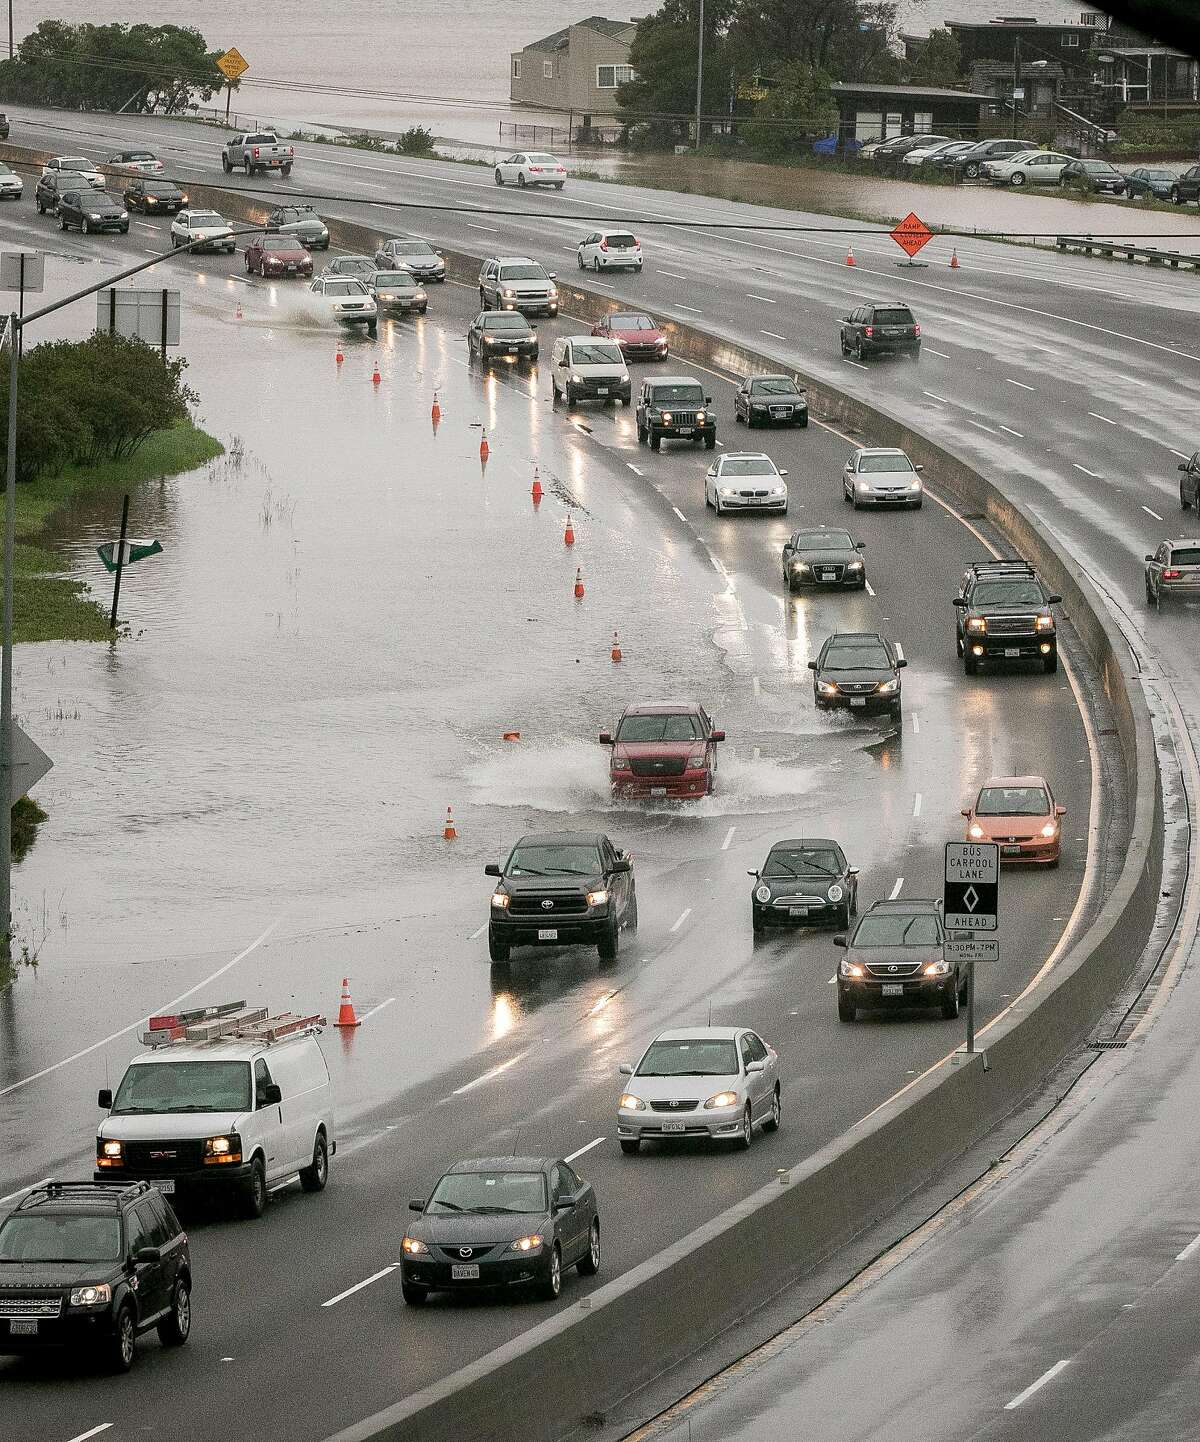 Flooding on Highway 101 in Sausalito is seen on February 7th. CalTrans has closed roads due to flooding in both Napa and San Mateo counties on February 20.